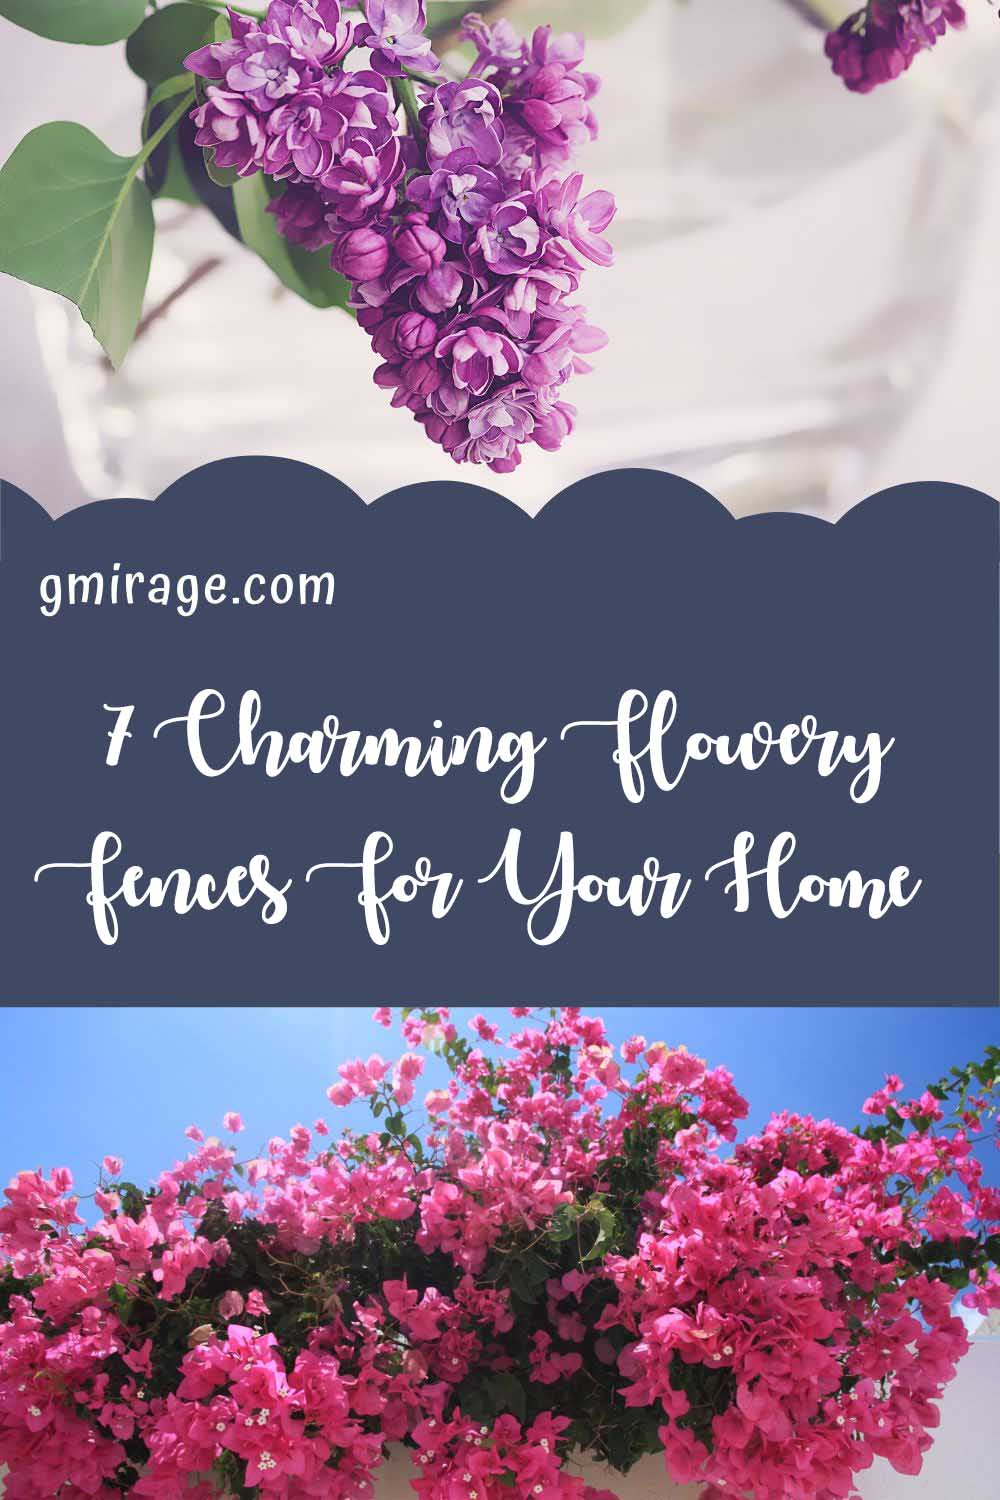 Charming Flowery Fences For Your Home, fence